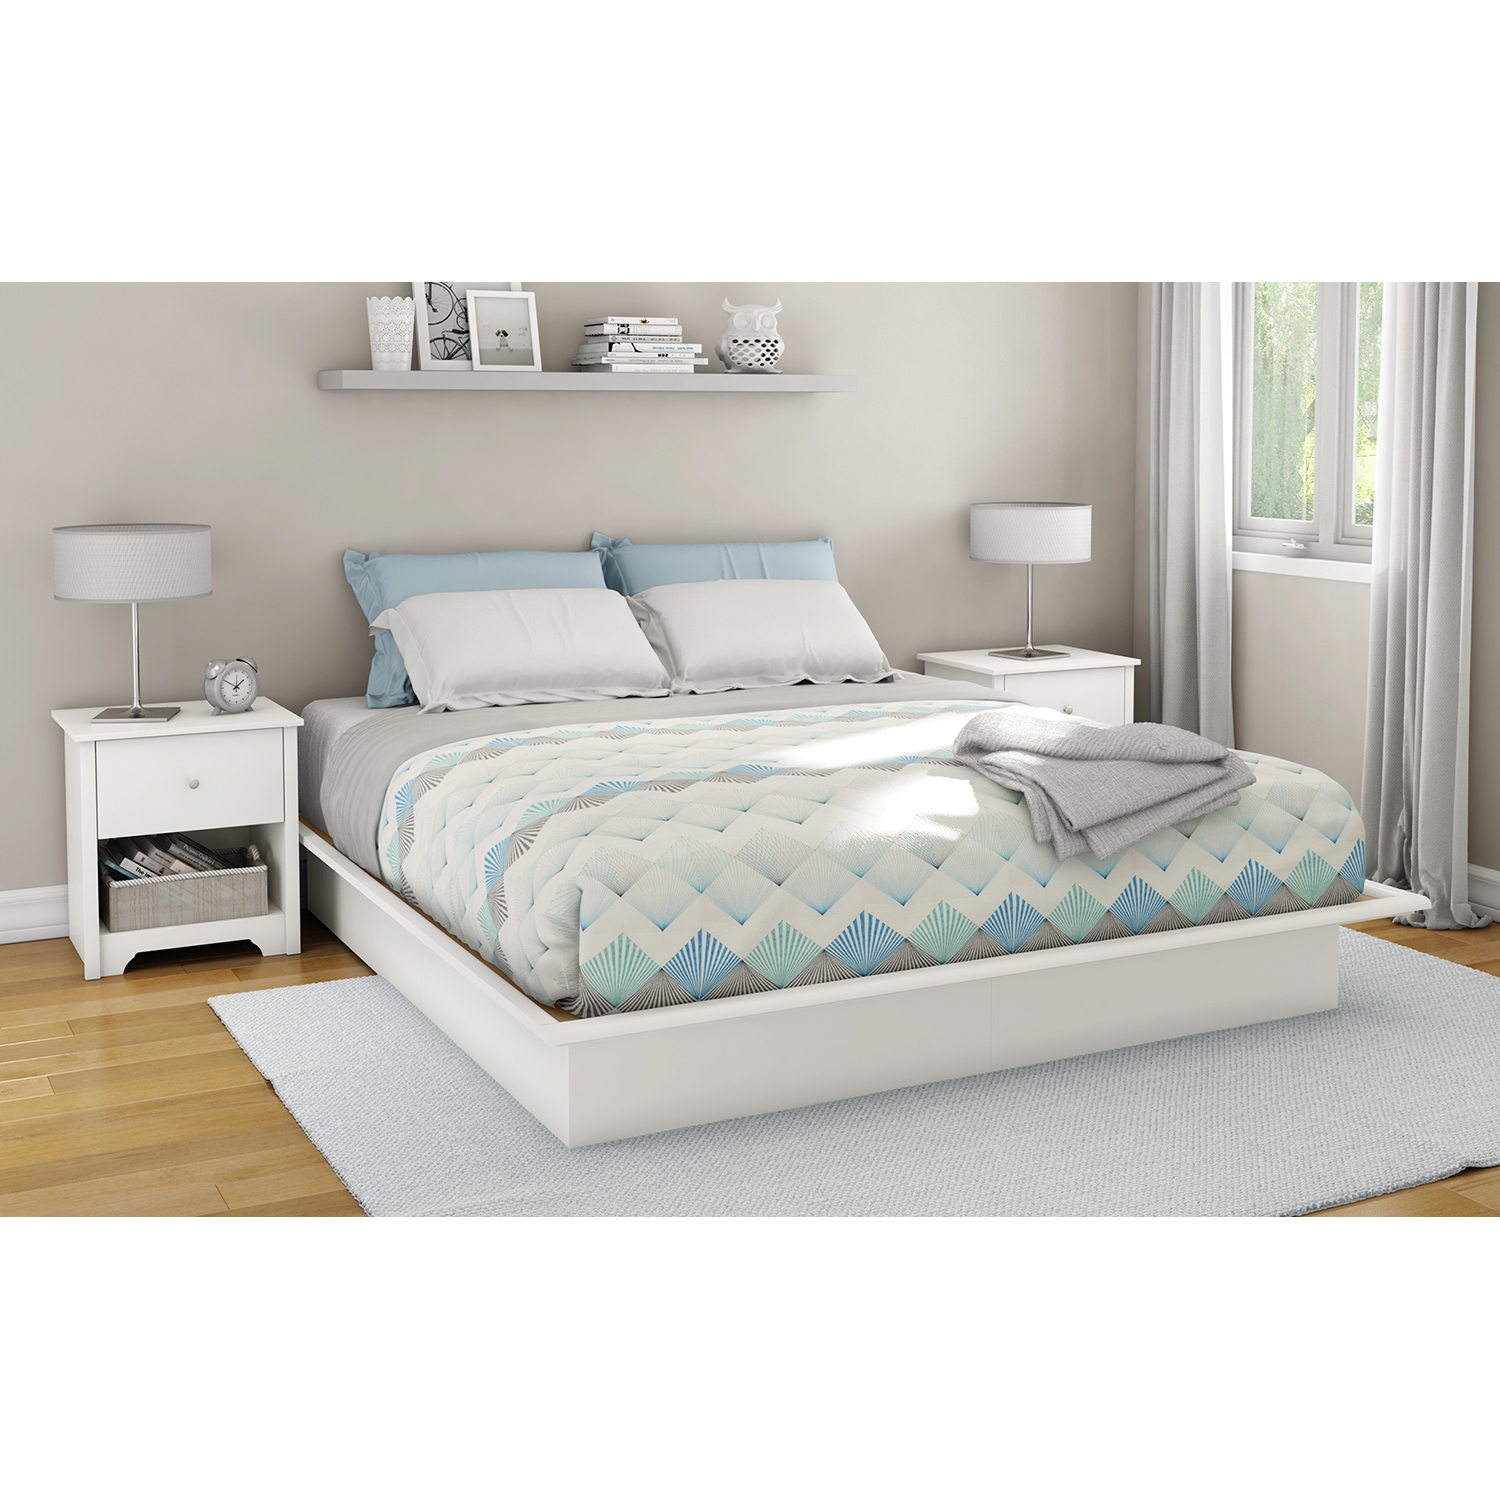 Step One King Platform Bed with Mouldings - Pure White - SS-3050248